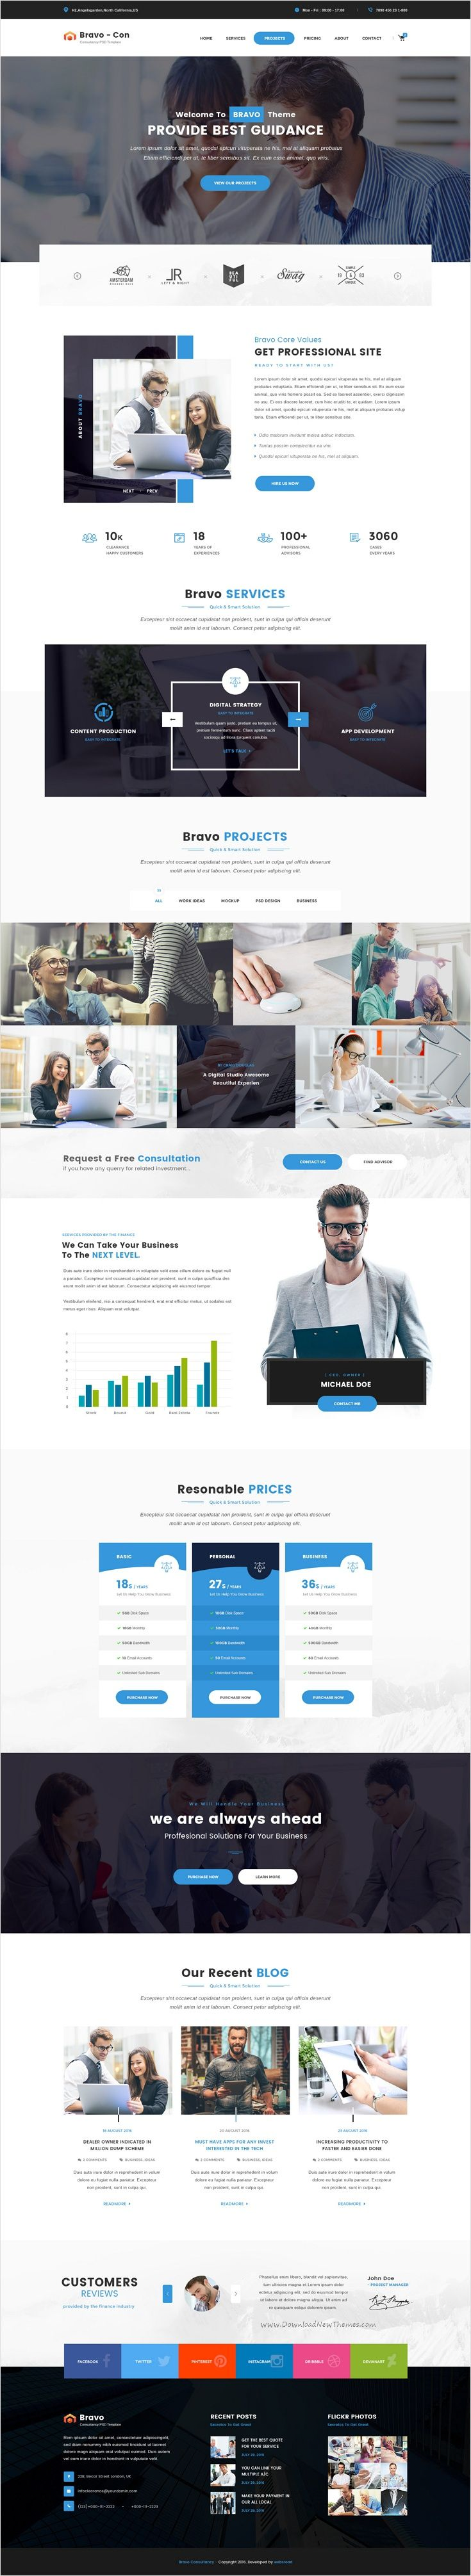 Bravo is a multipurpose #PSD #template with awesome collection of 8 niches Business, #Consultancy, Restaurant, SEO, Construction, Architecture, SPA, Fashion Shop website with 66 organized PSD pages download now➩ s2-do.host-ed.me